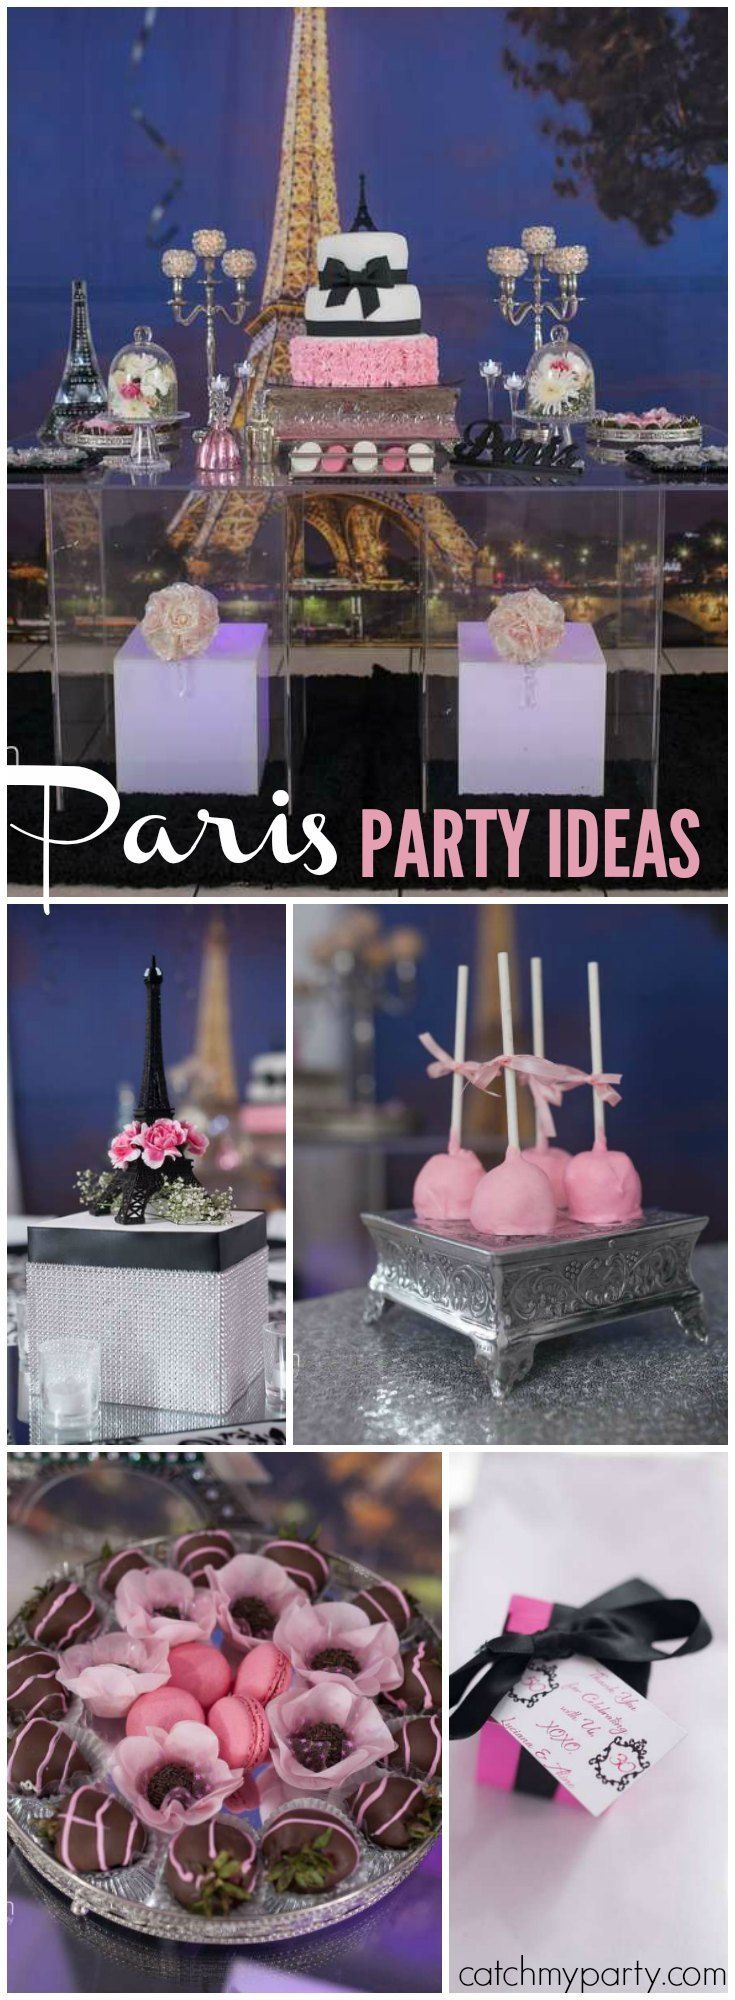 Such an elegant Paris birthday party for a mother and daughter! See more party ideas at Catchmyparty.com!